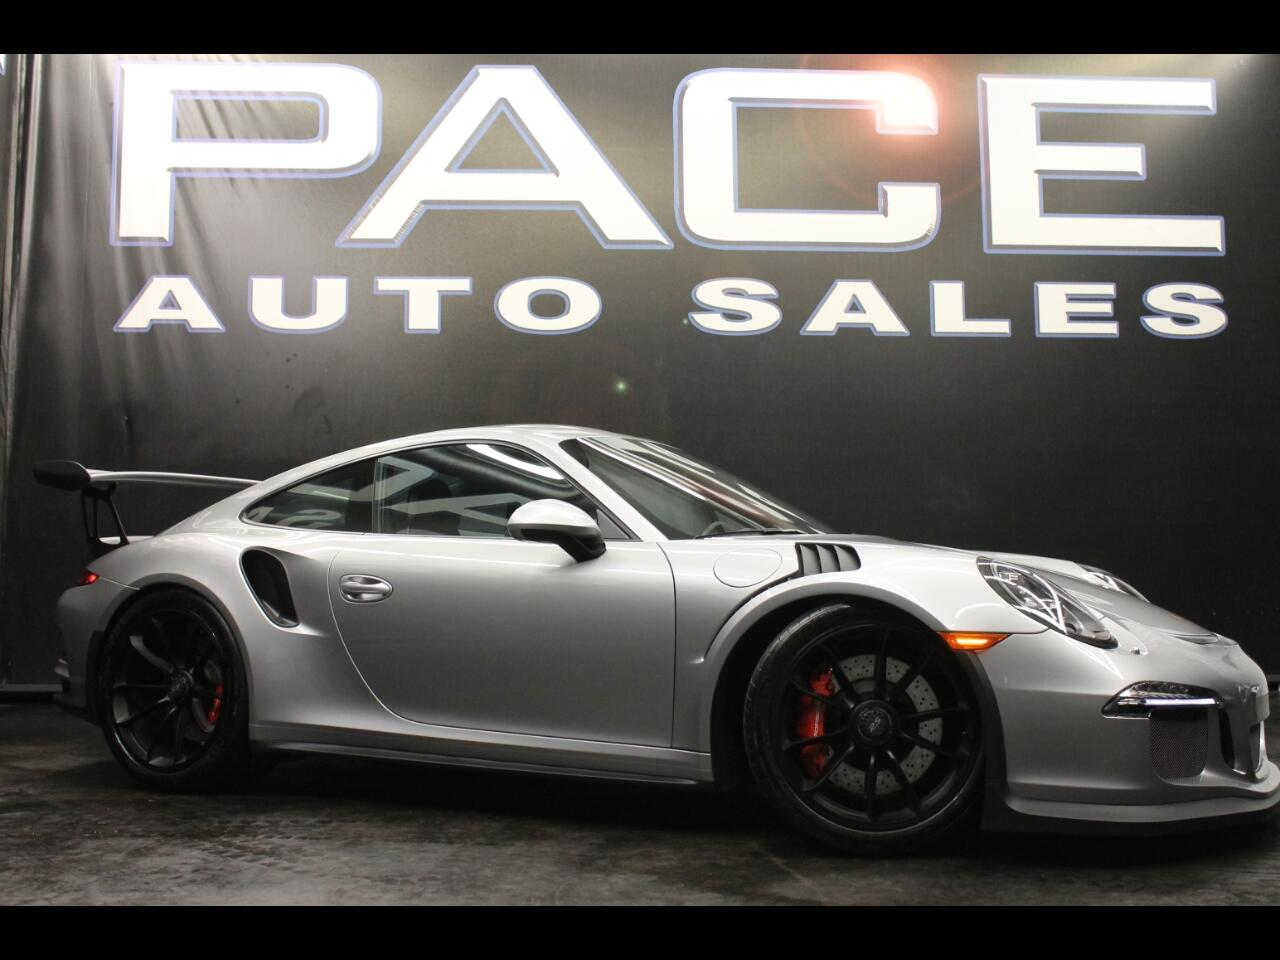 Used Cars Hattiesburg Ms >> Used Cars For Sale Hattiesburg Ms 39402 Pace Auto Sales